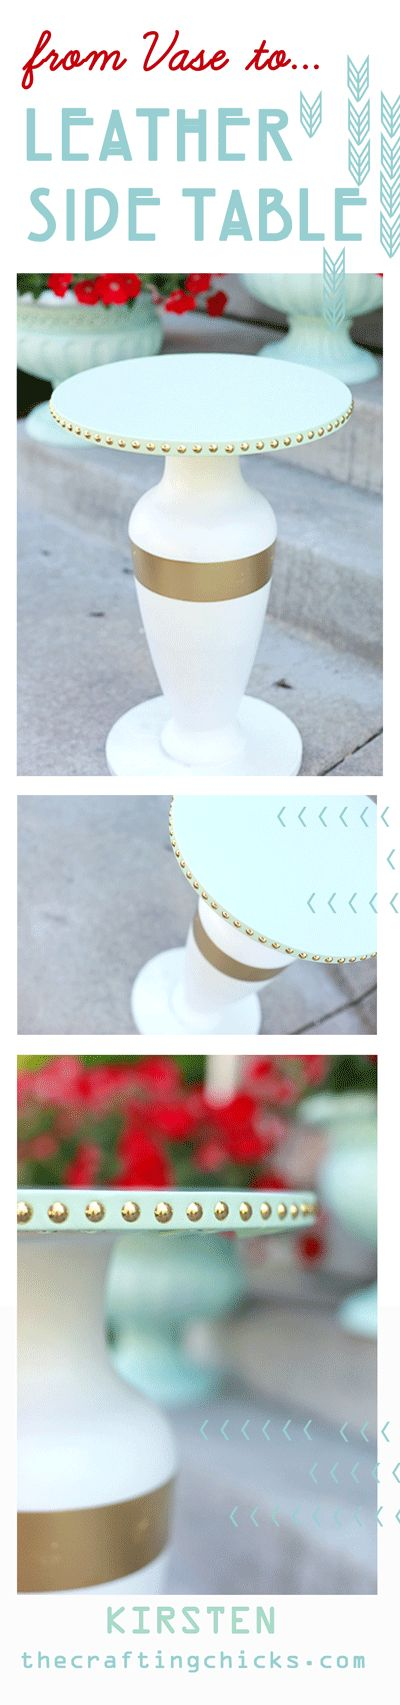 DIY:  From Vase to Leather Side Table from thecraftingchicks... #craftingchicks ...